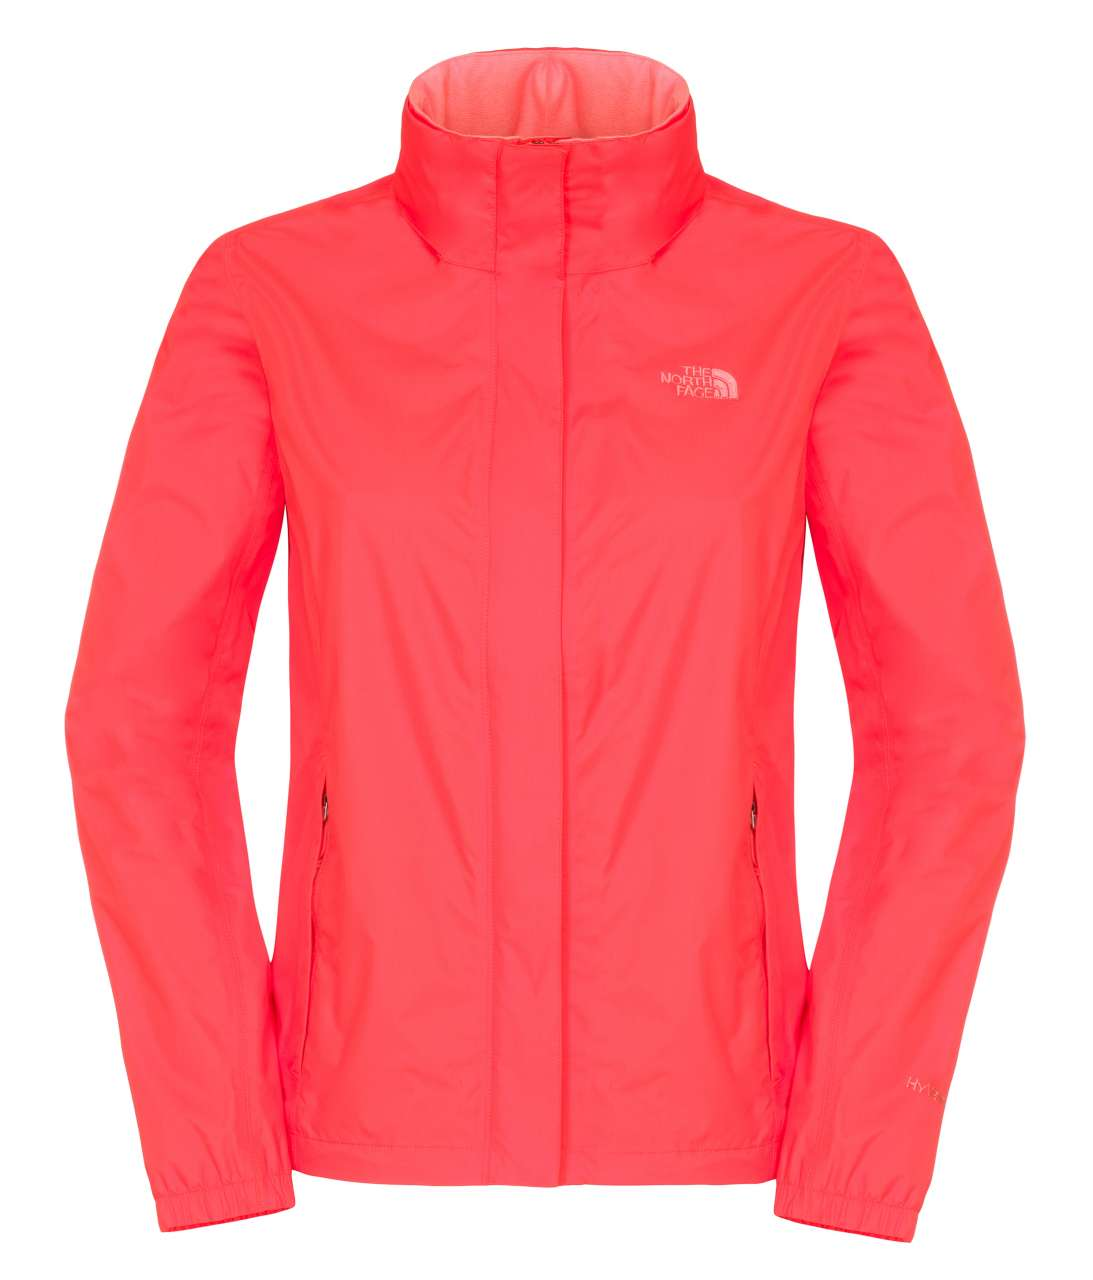 The North Face Winterjacke >> The North Face Damen Jacke Grün Pictures to pin on Pinterest